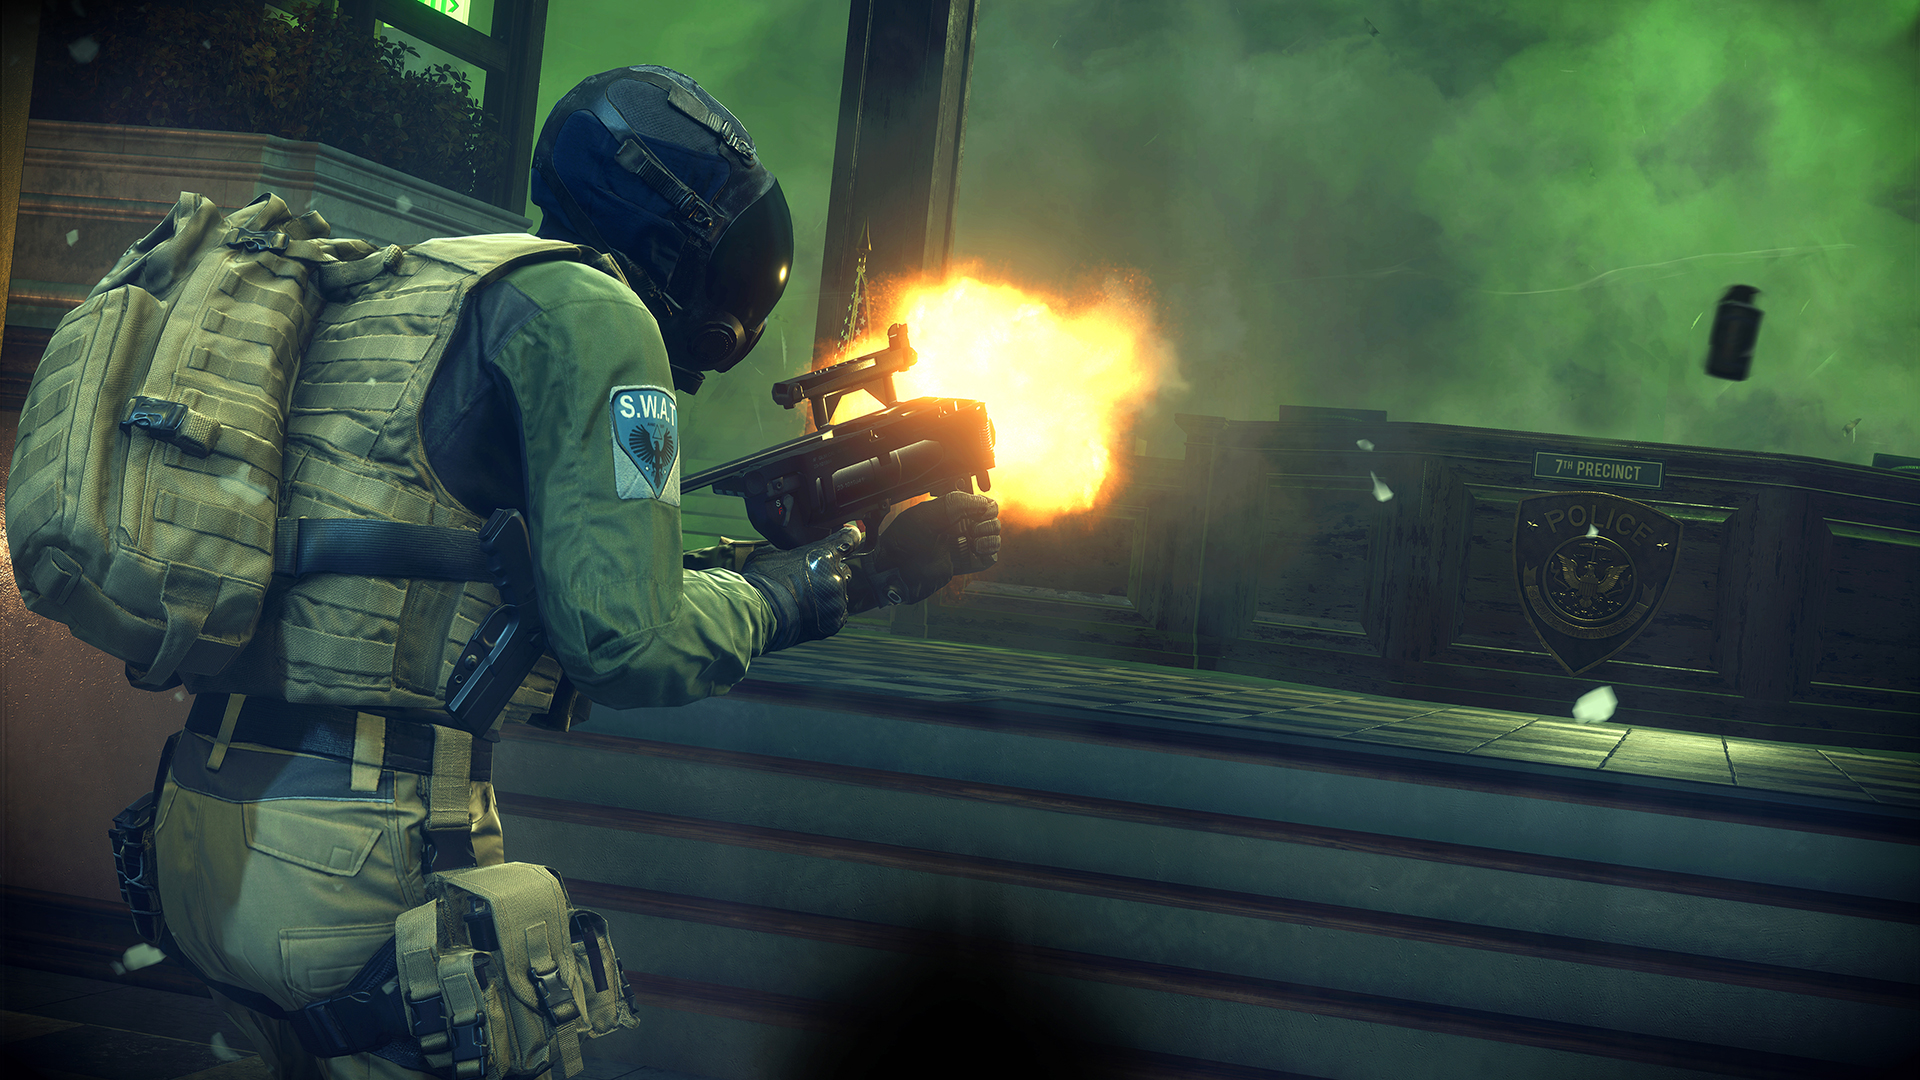 Battlefield Hardline Getting Free Blackout DLC Including New Maps And Weapons VG247